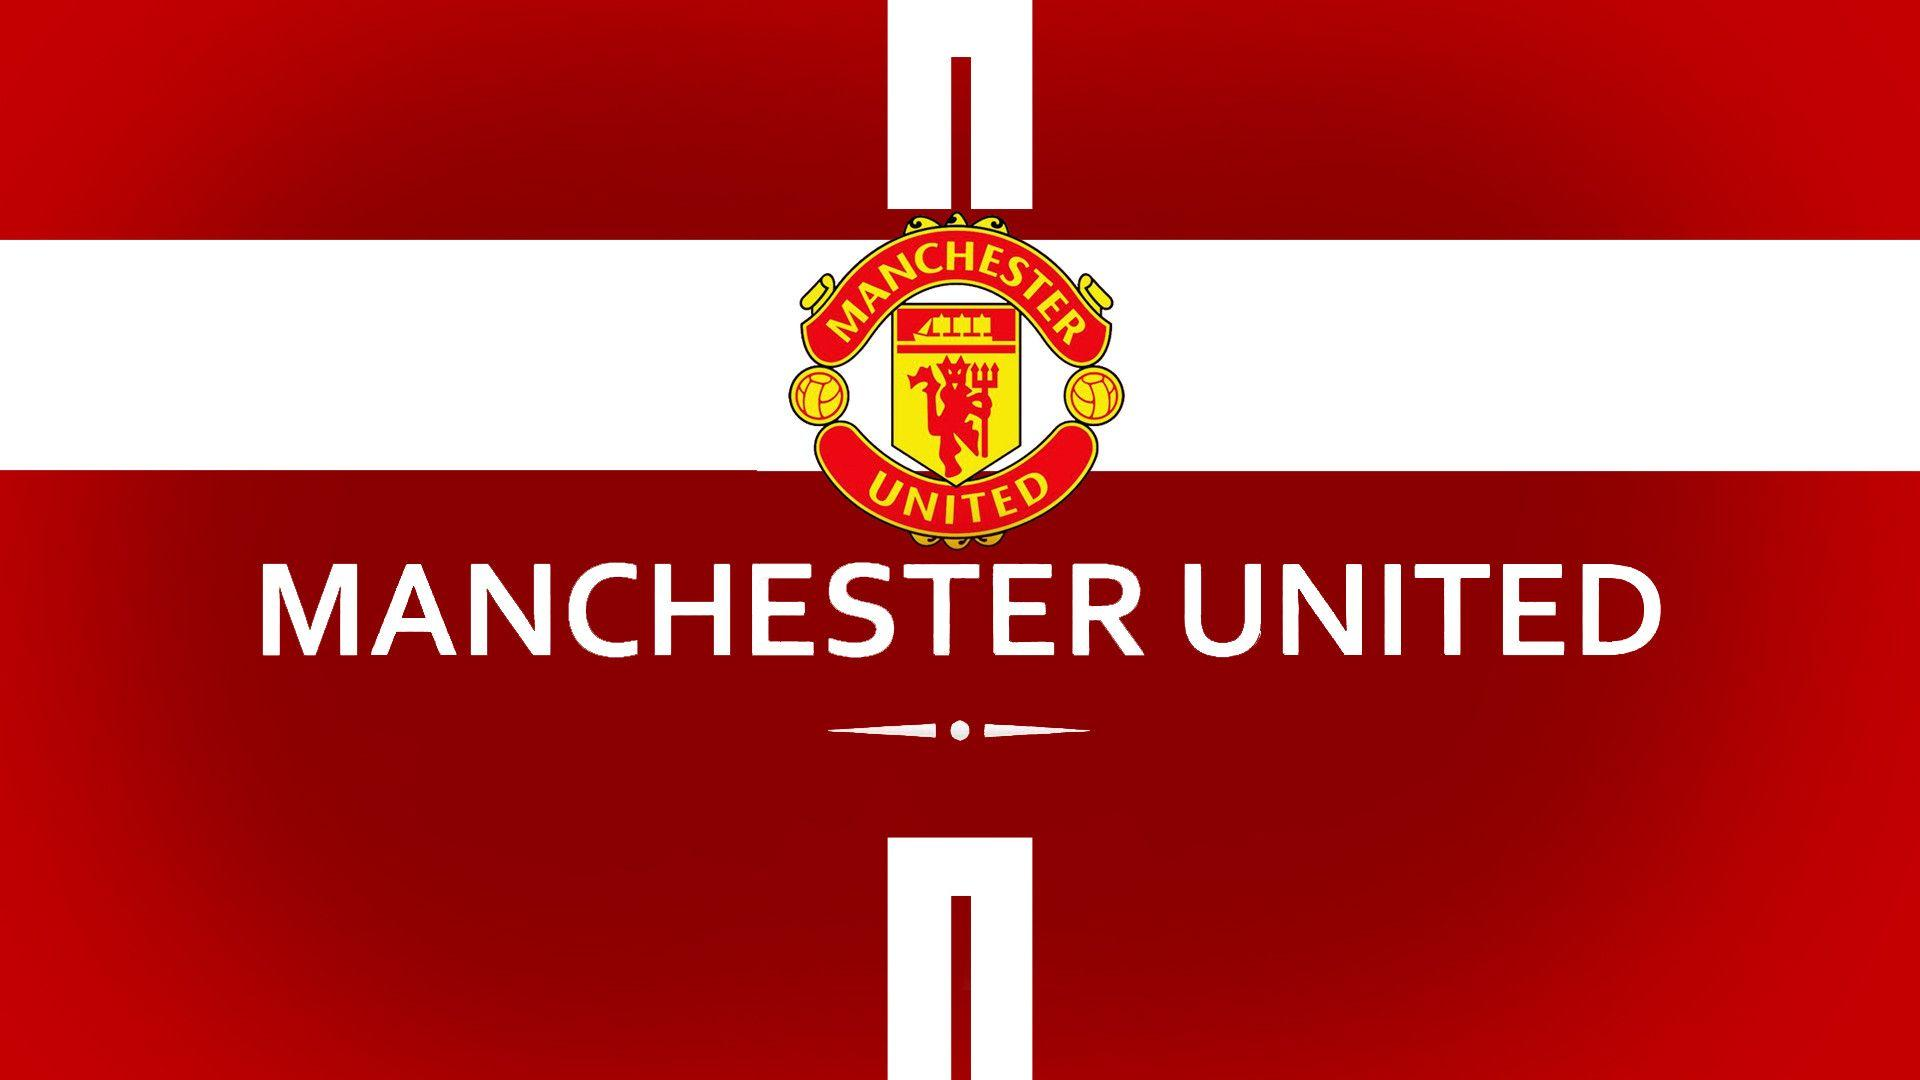 Manchester united wallpapers 2017 wallpaper cave for Manchester united exterieur 2017